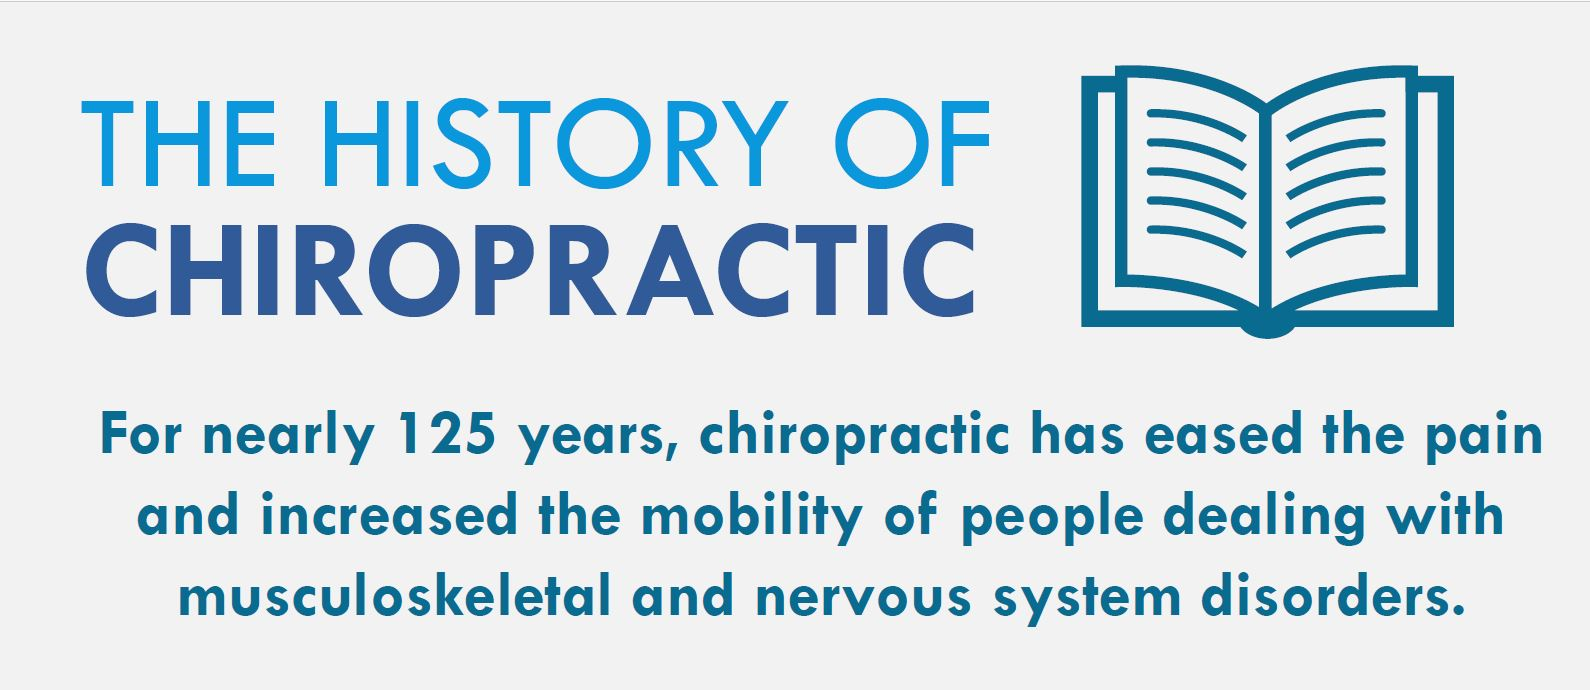 [Infographic] History of Chiropractic